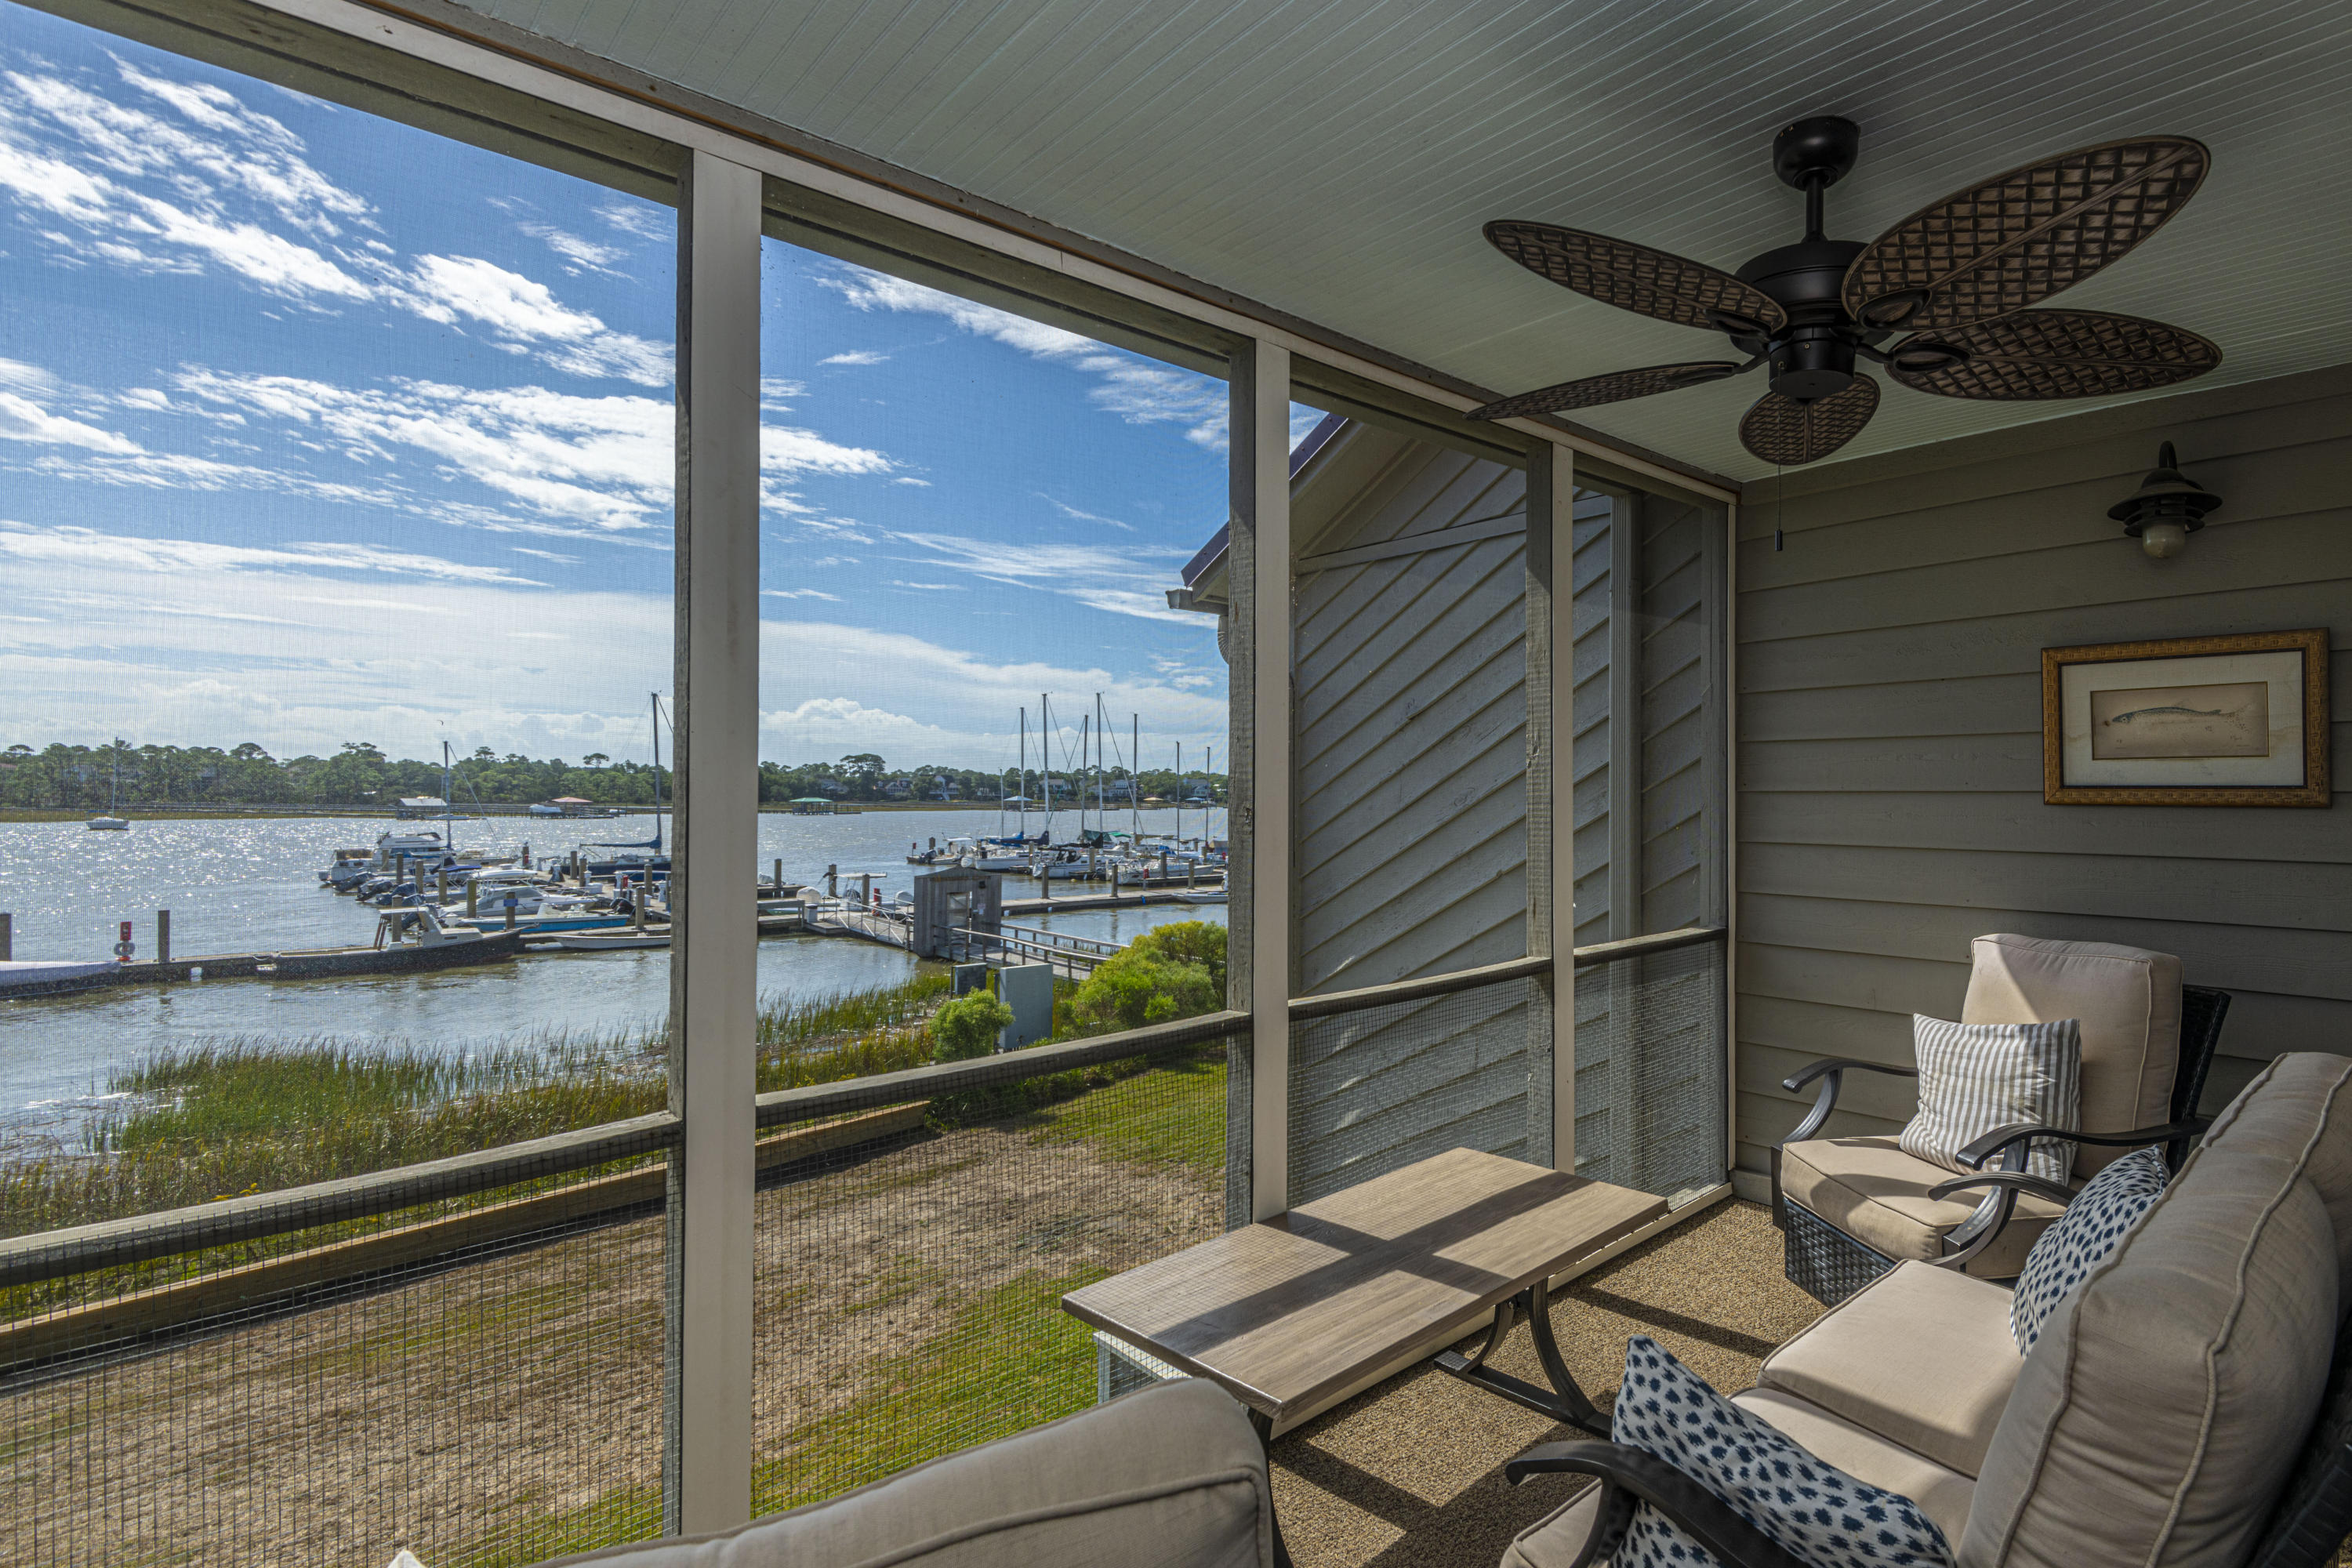 Mariners Cay Homes For Sale - 60 Mariners Cay, Folly Beach, SC - 9